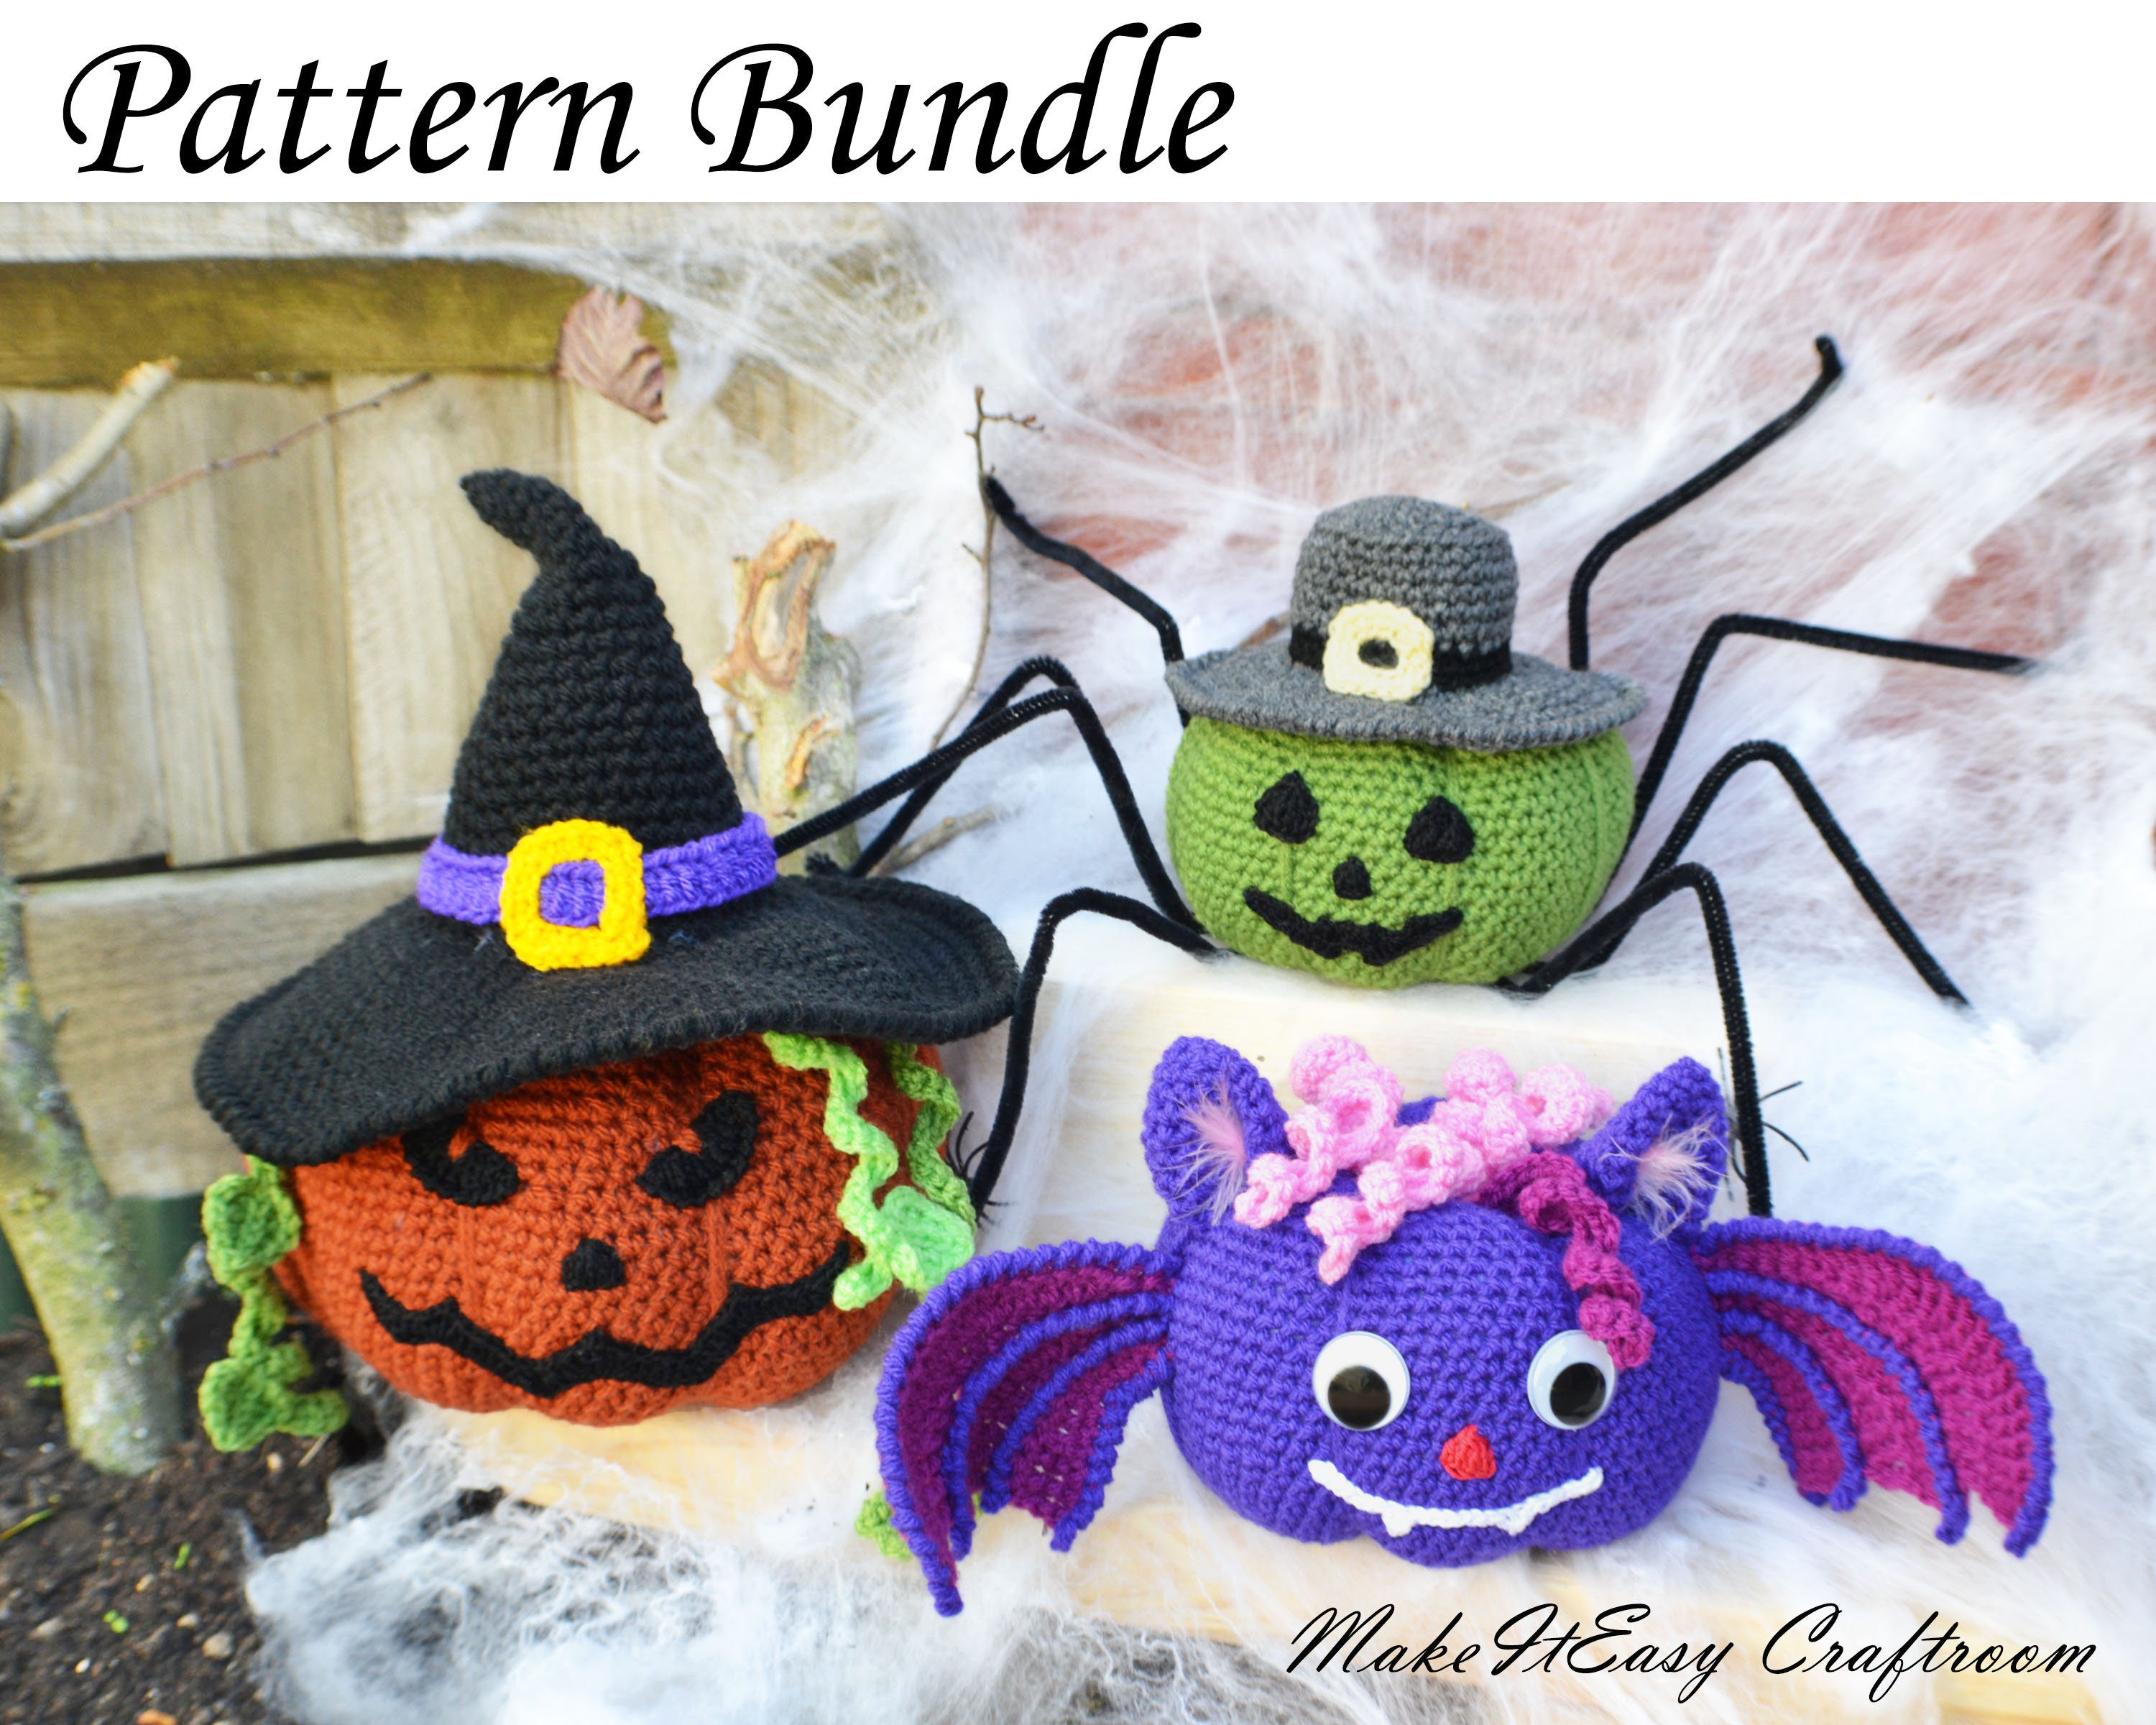 5 Little Monsters: 16 Halloween Crochet Projects: Costumes, Decor ... | 2400x3000